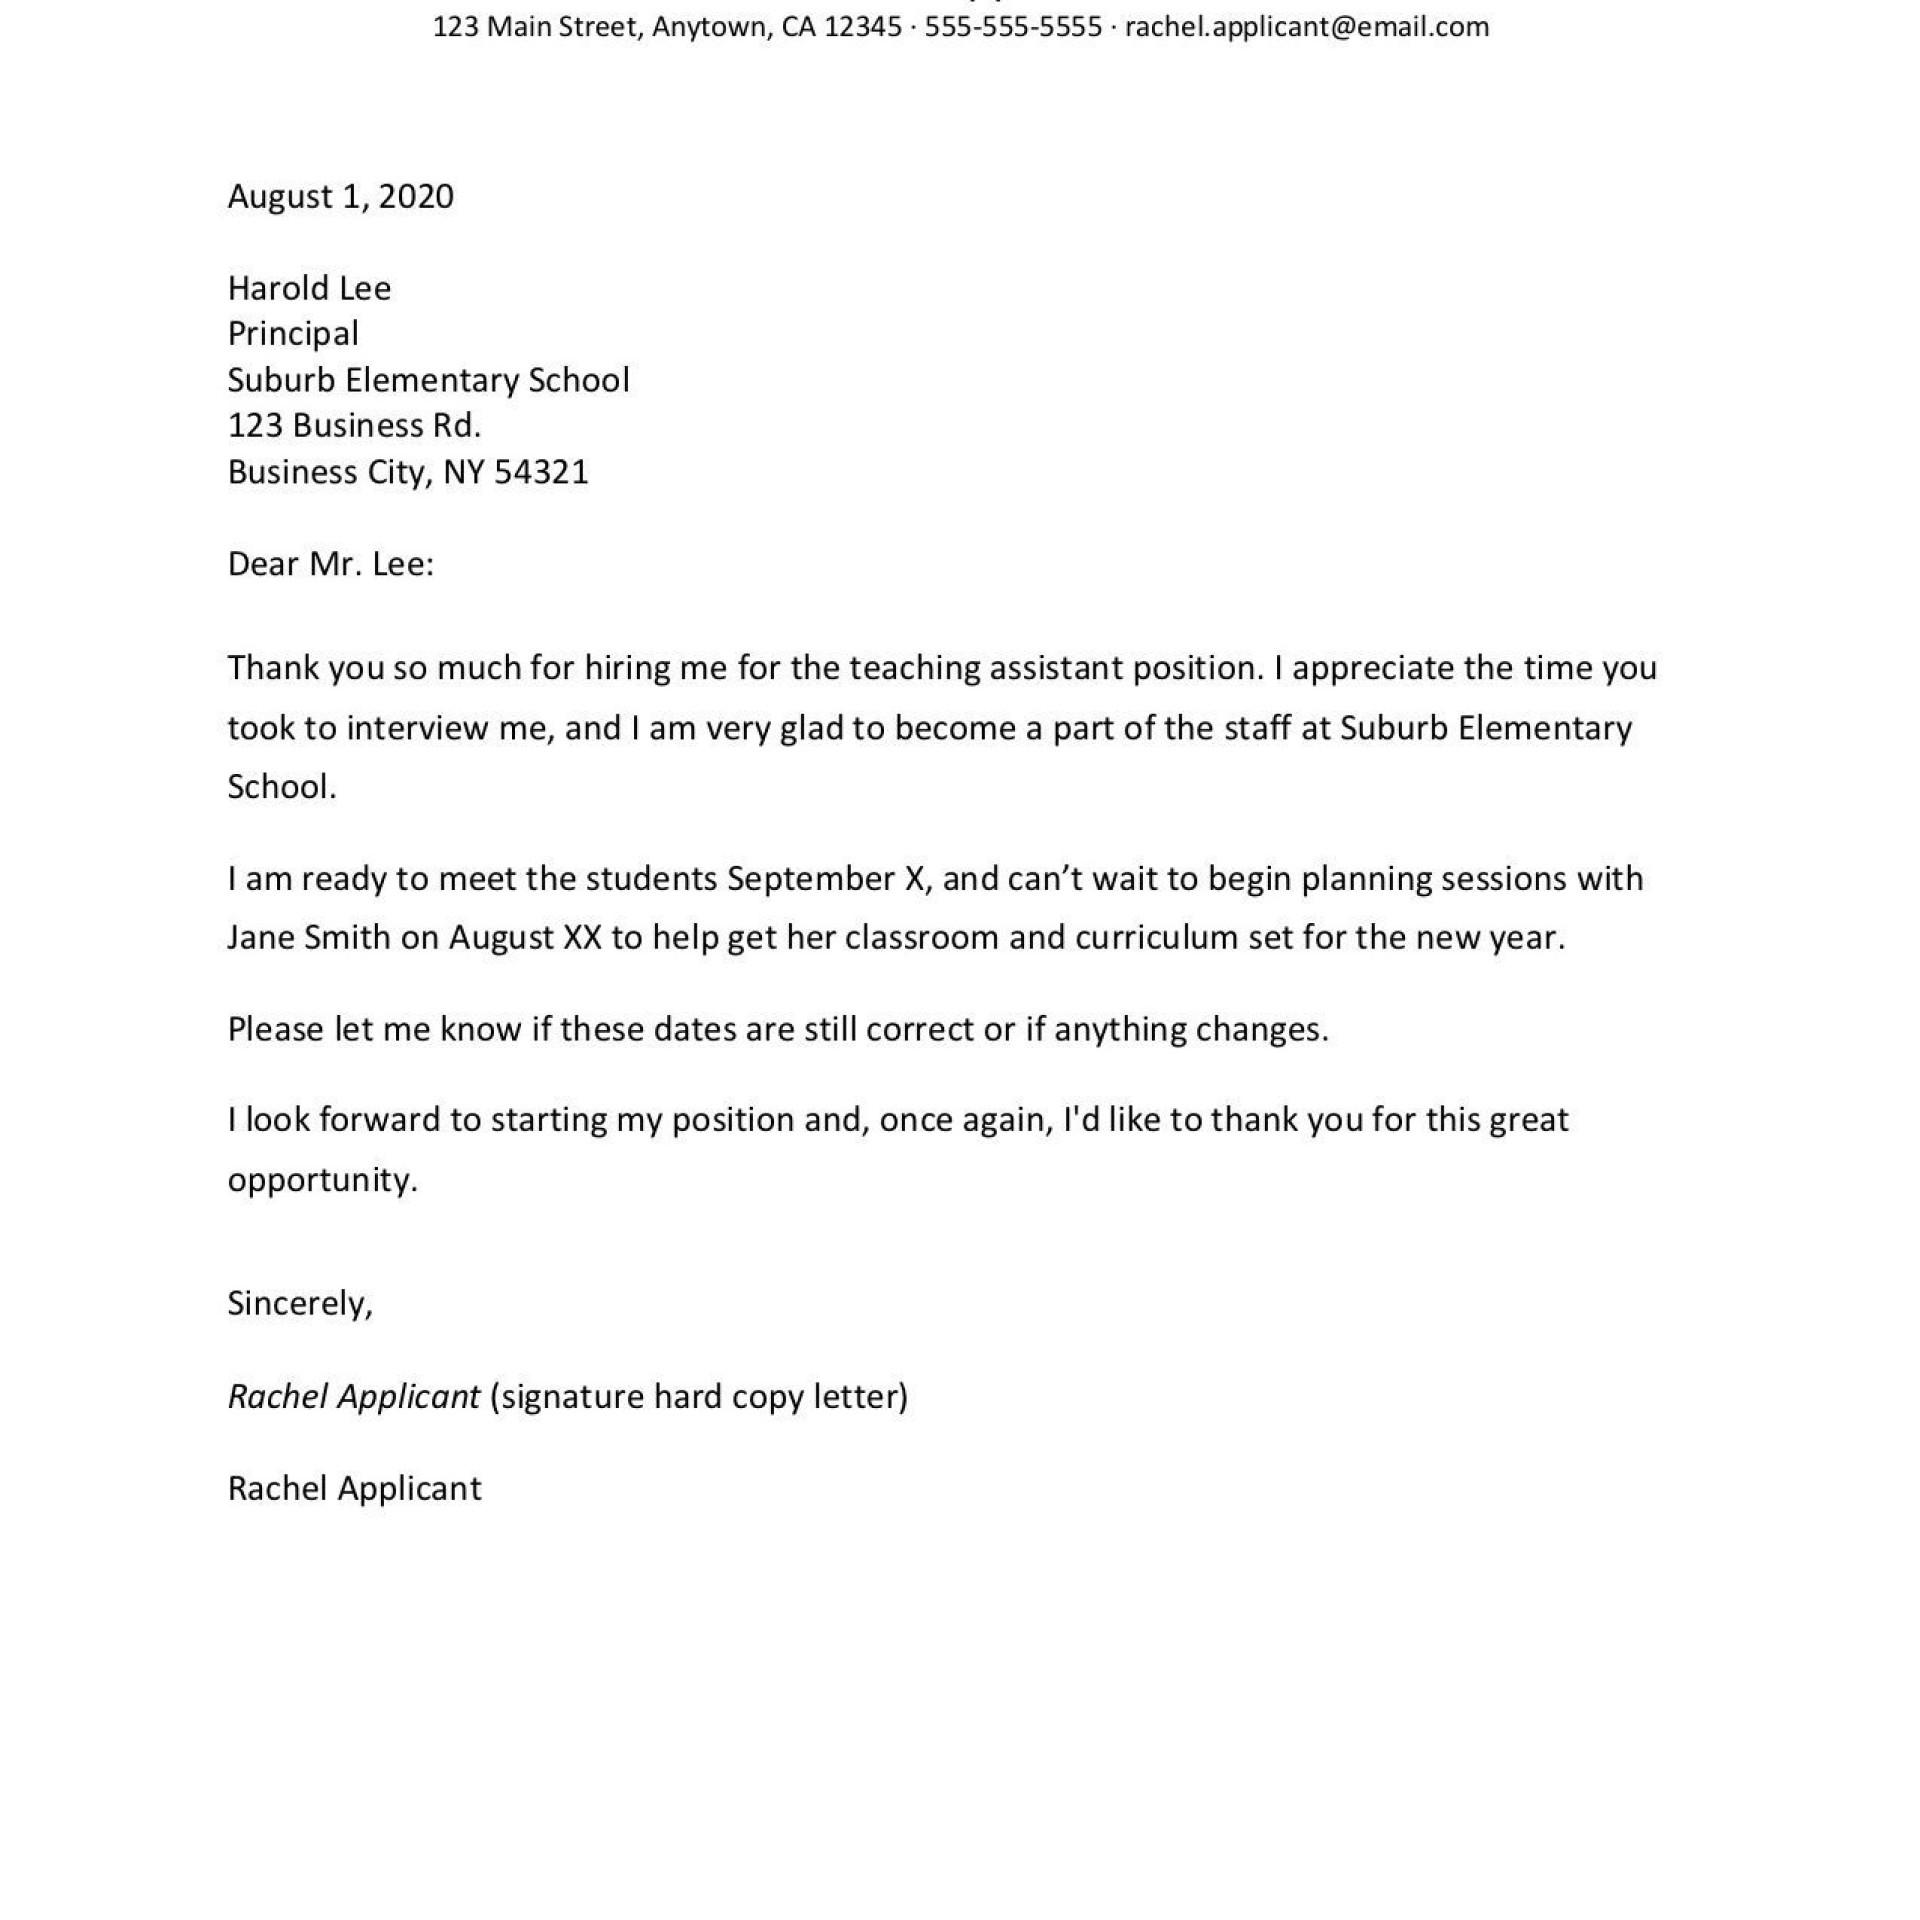 007 Impressive Follow Up Email Template Job Application Sample  After For1920